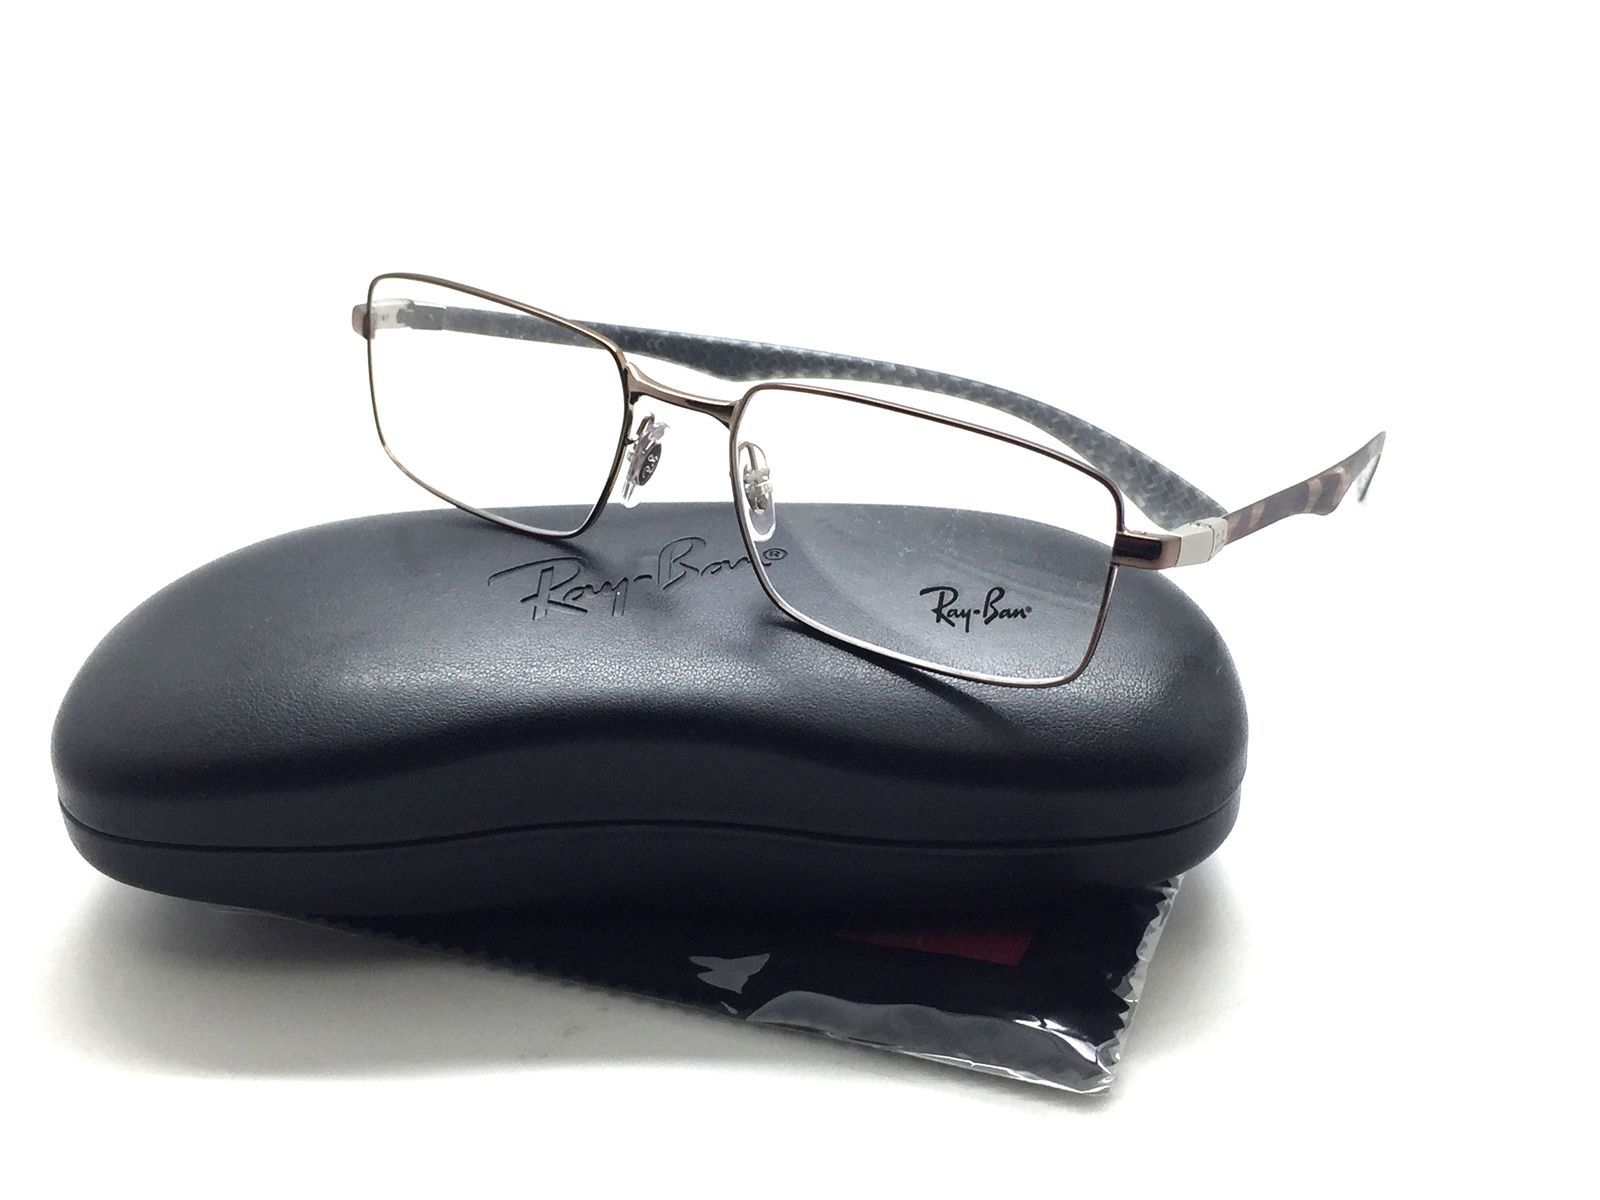 042a518f4ce9 Ray Ban RB 8414 2531 Carbon Plate 55-18-145 and 50 similar items